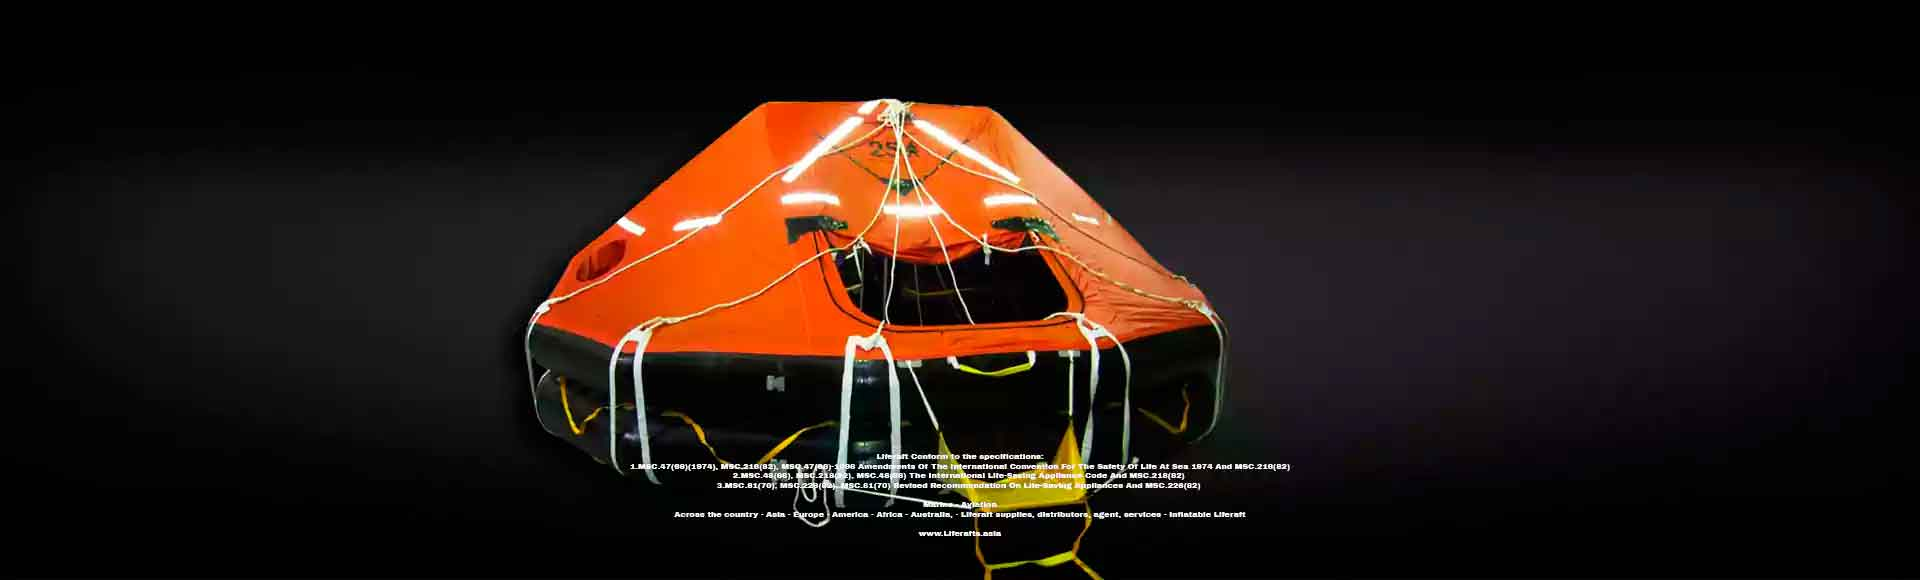 liferafts, liferaft, annual inspection-indonesia